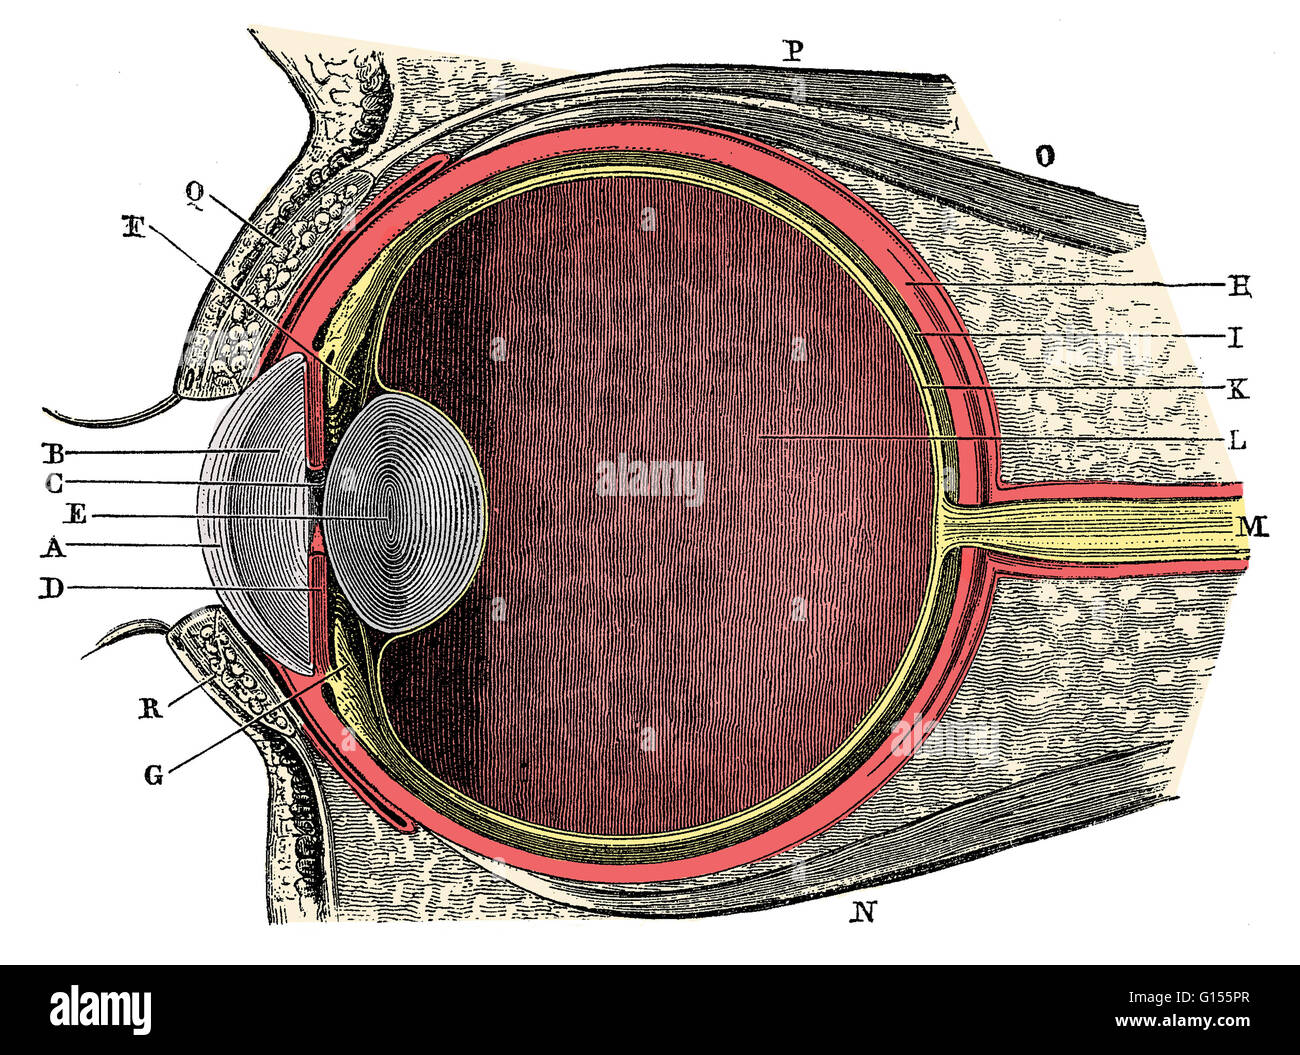 Anatomy of the Human Eye. Cornea (A), aqueous humor (B), iris (C ...